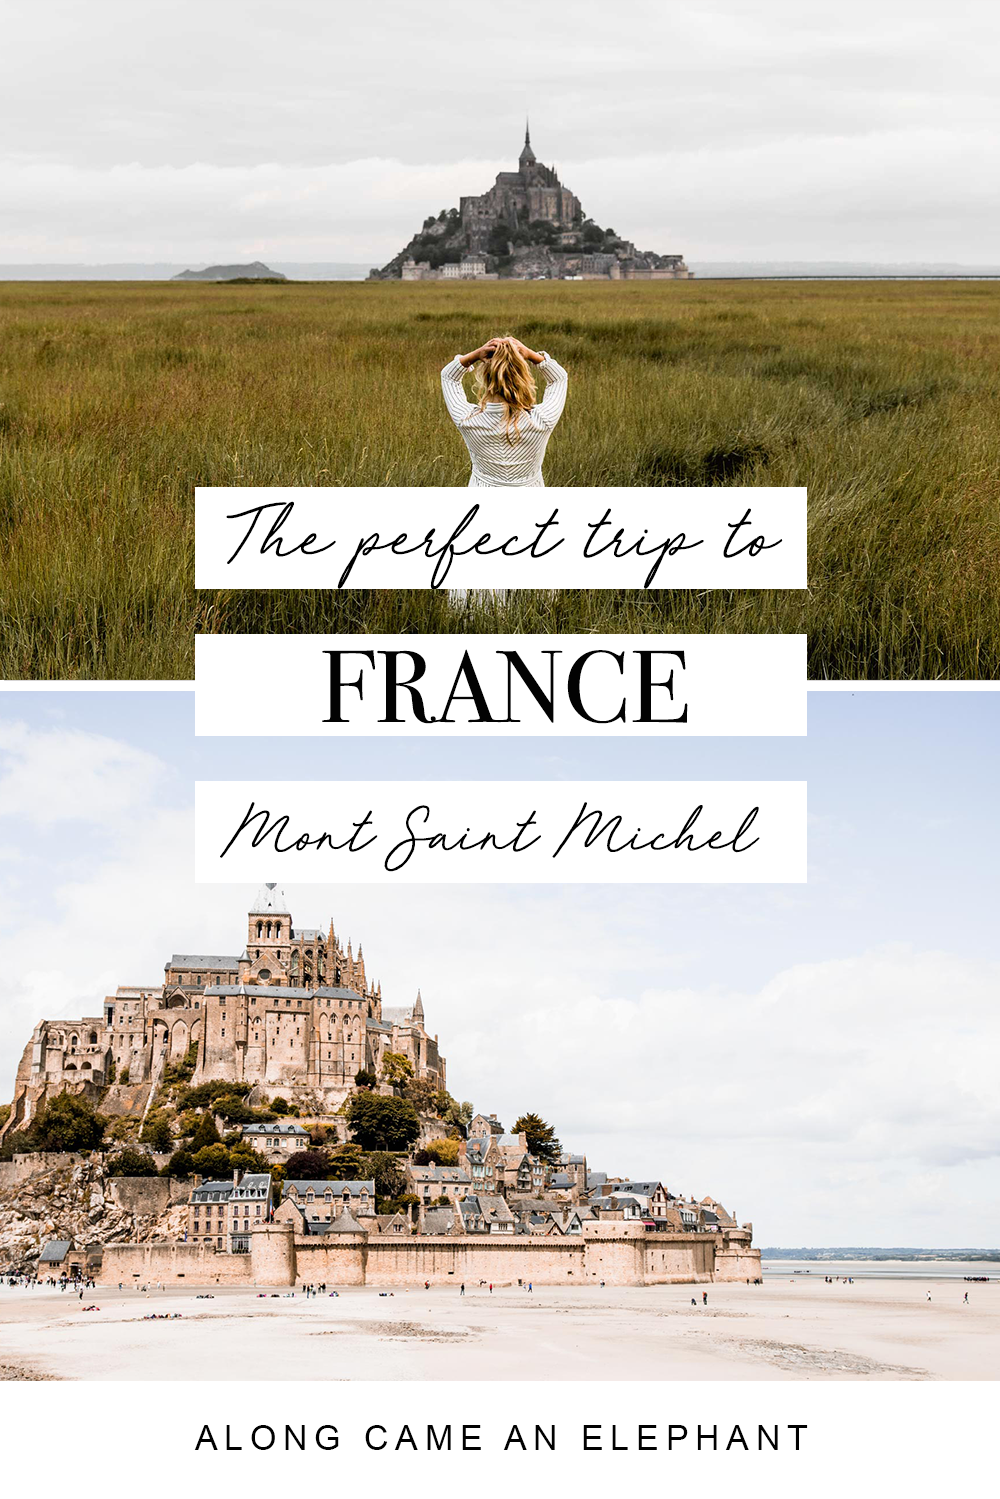 A perfect trip to the Mont-Saint-Michel, France. While this mysterious island attracts millions of visitors each year, it can be tough to appreciate its beauty through the crowds. Here's out perfect Mont-Saint-Michel itinerary to avoid the crowds! #france #montsaintmichel #francetravel #franceitinerary